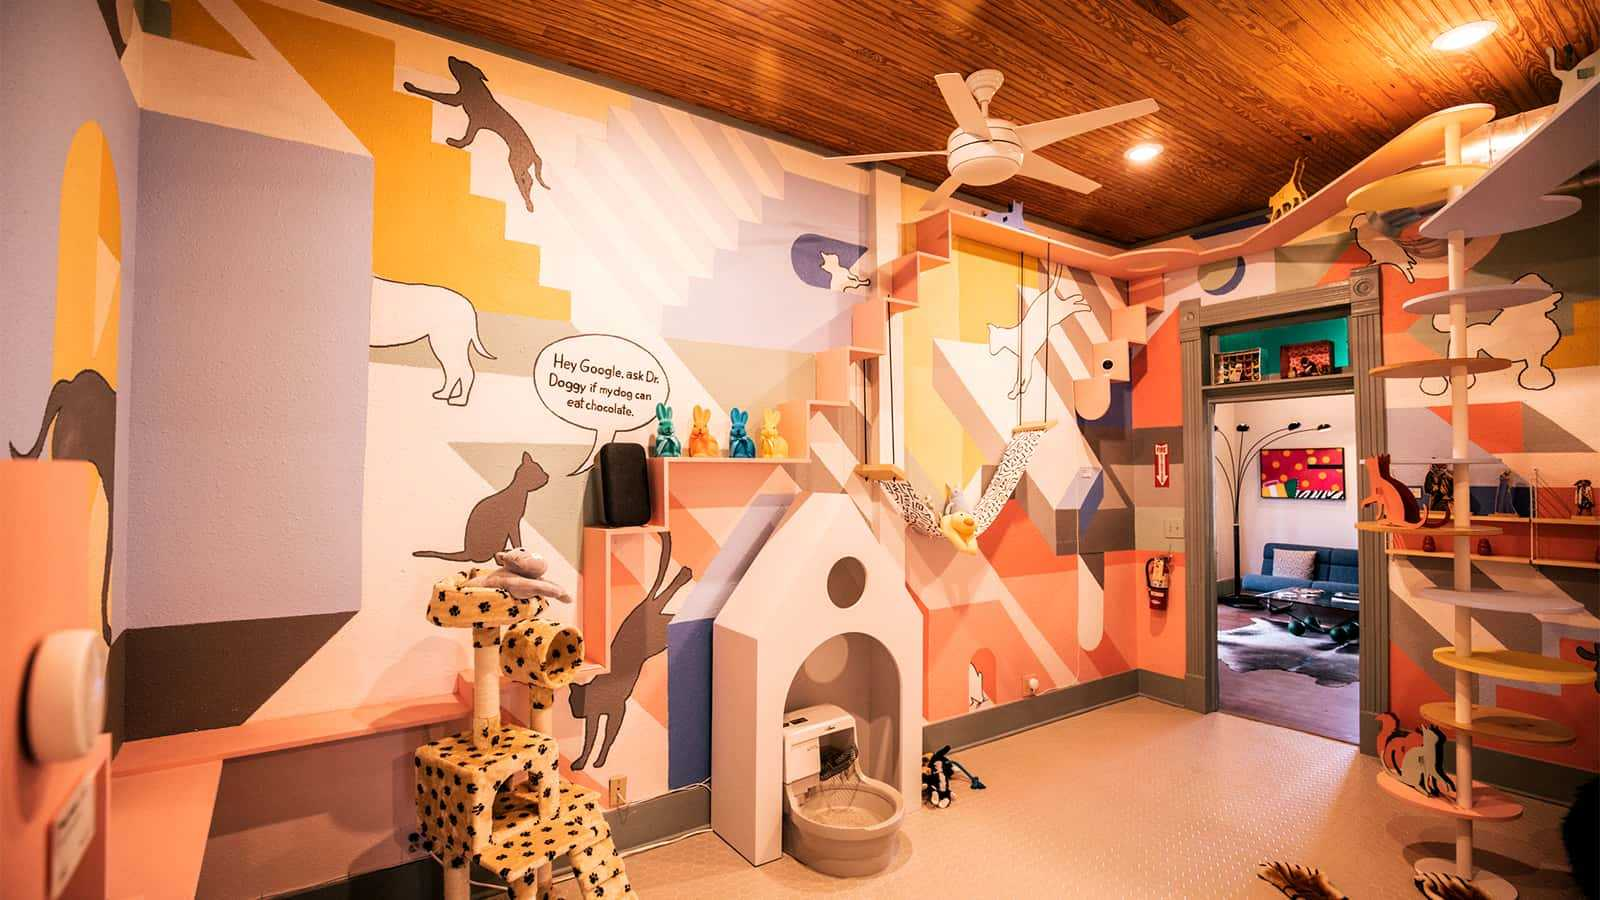 Pet room at the Google Assistant SXSW Fun House 2018 experience.